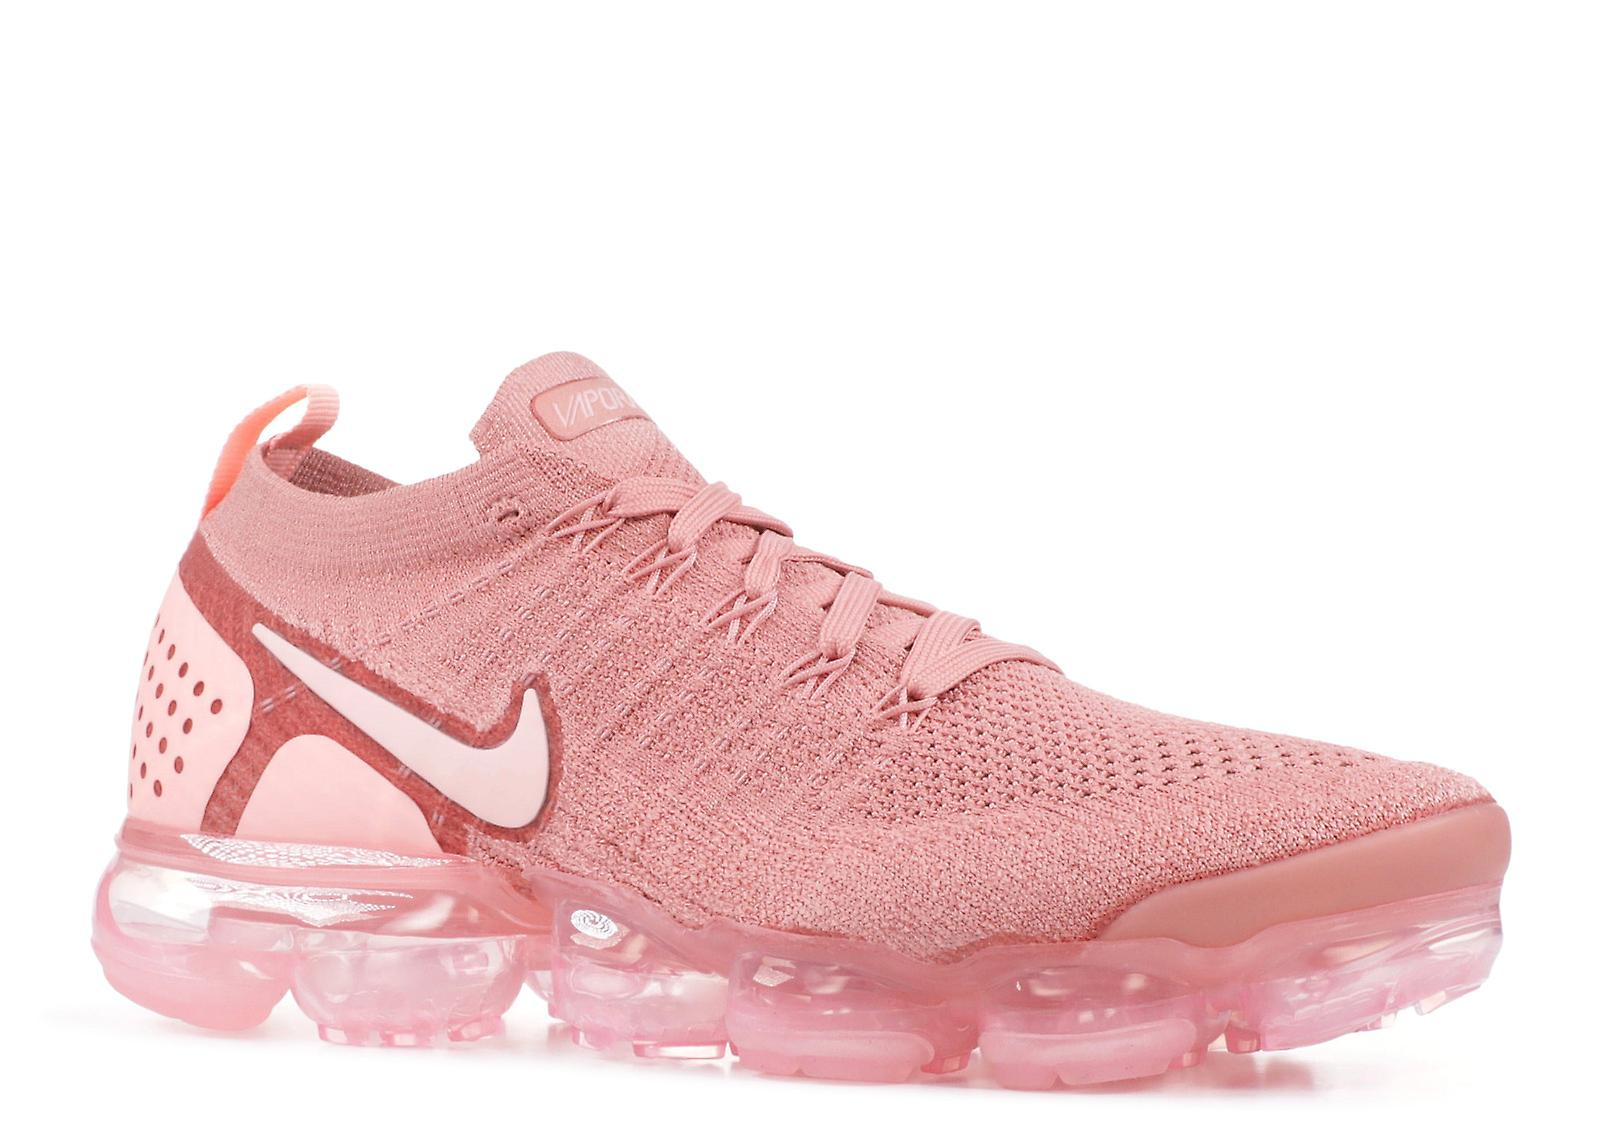 W Nike Air Vapormax Flyknit 2  Rose d'épaves  - 942843 - 600 - chaussures